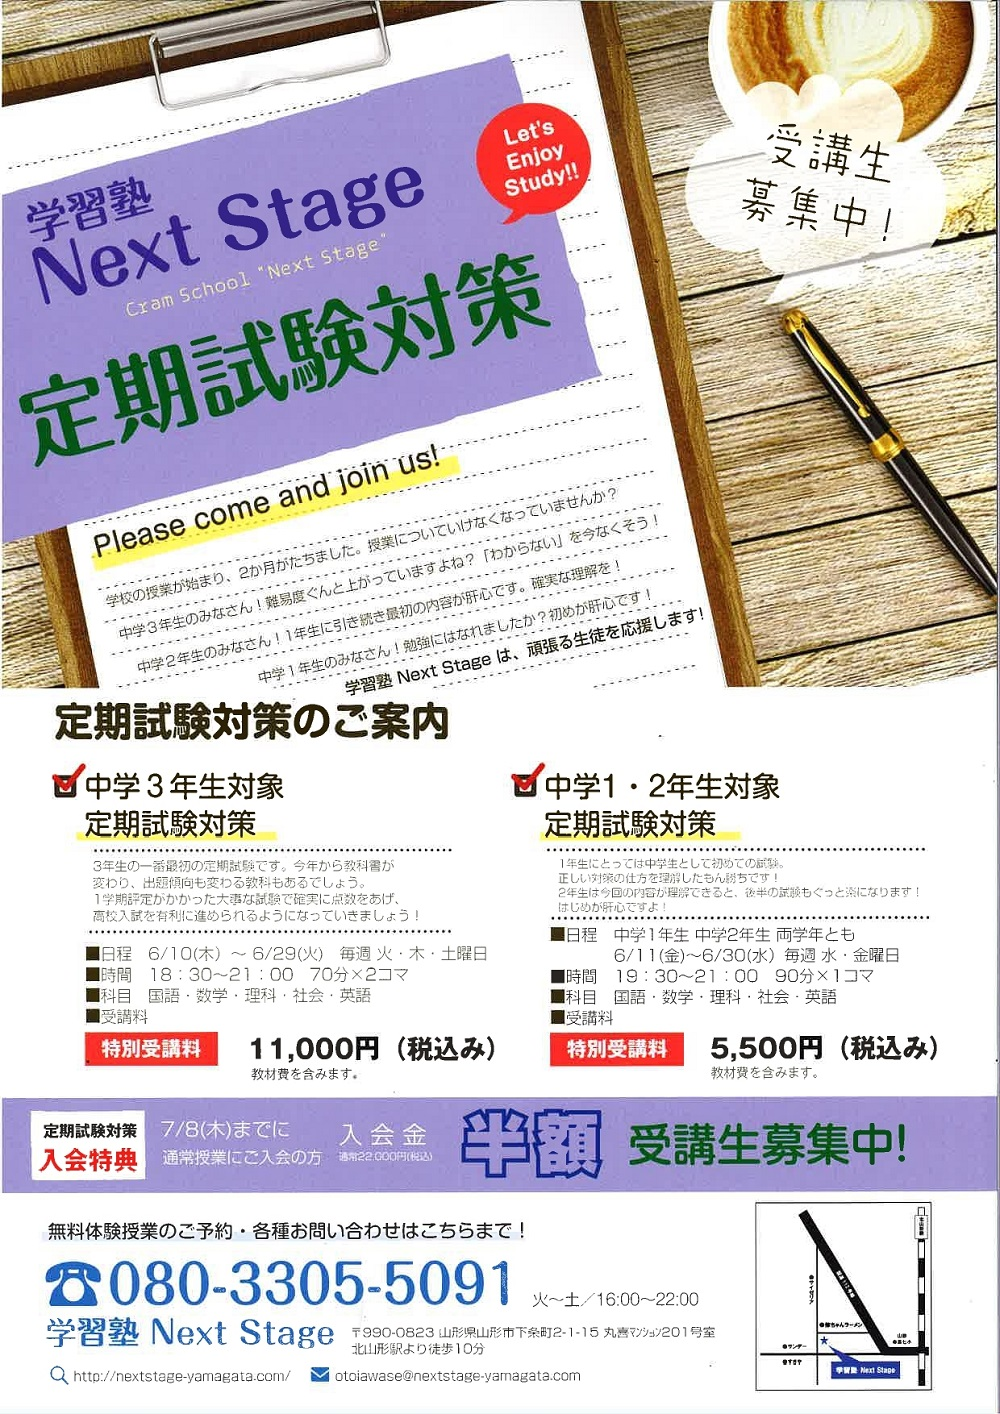 【Next Stage】1学期末試験対策のご案内